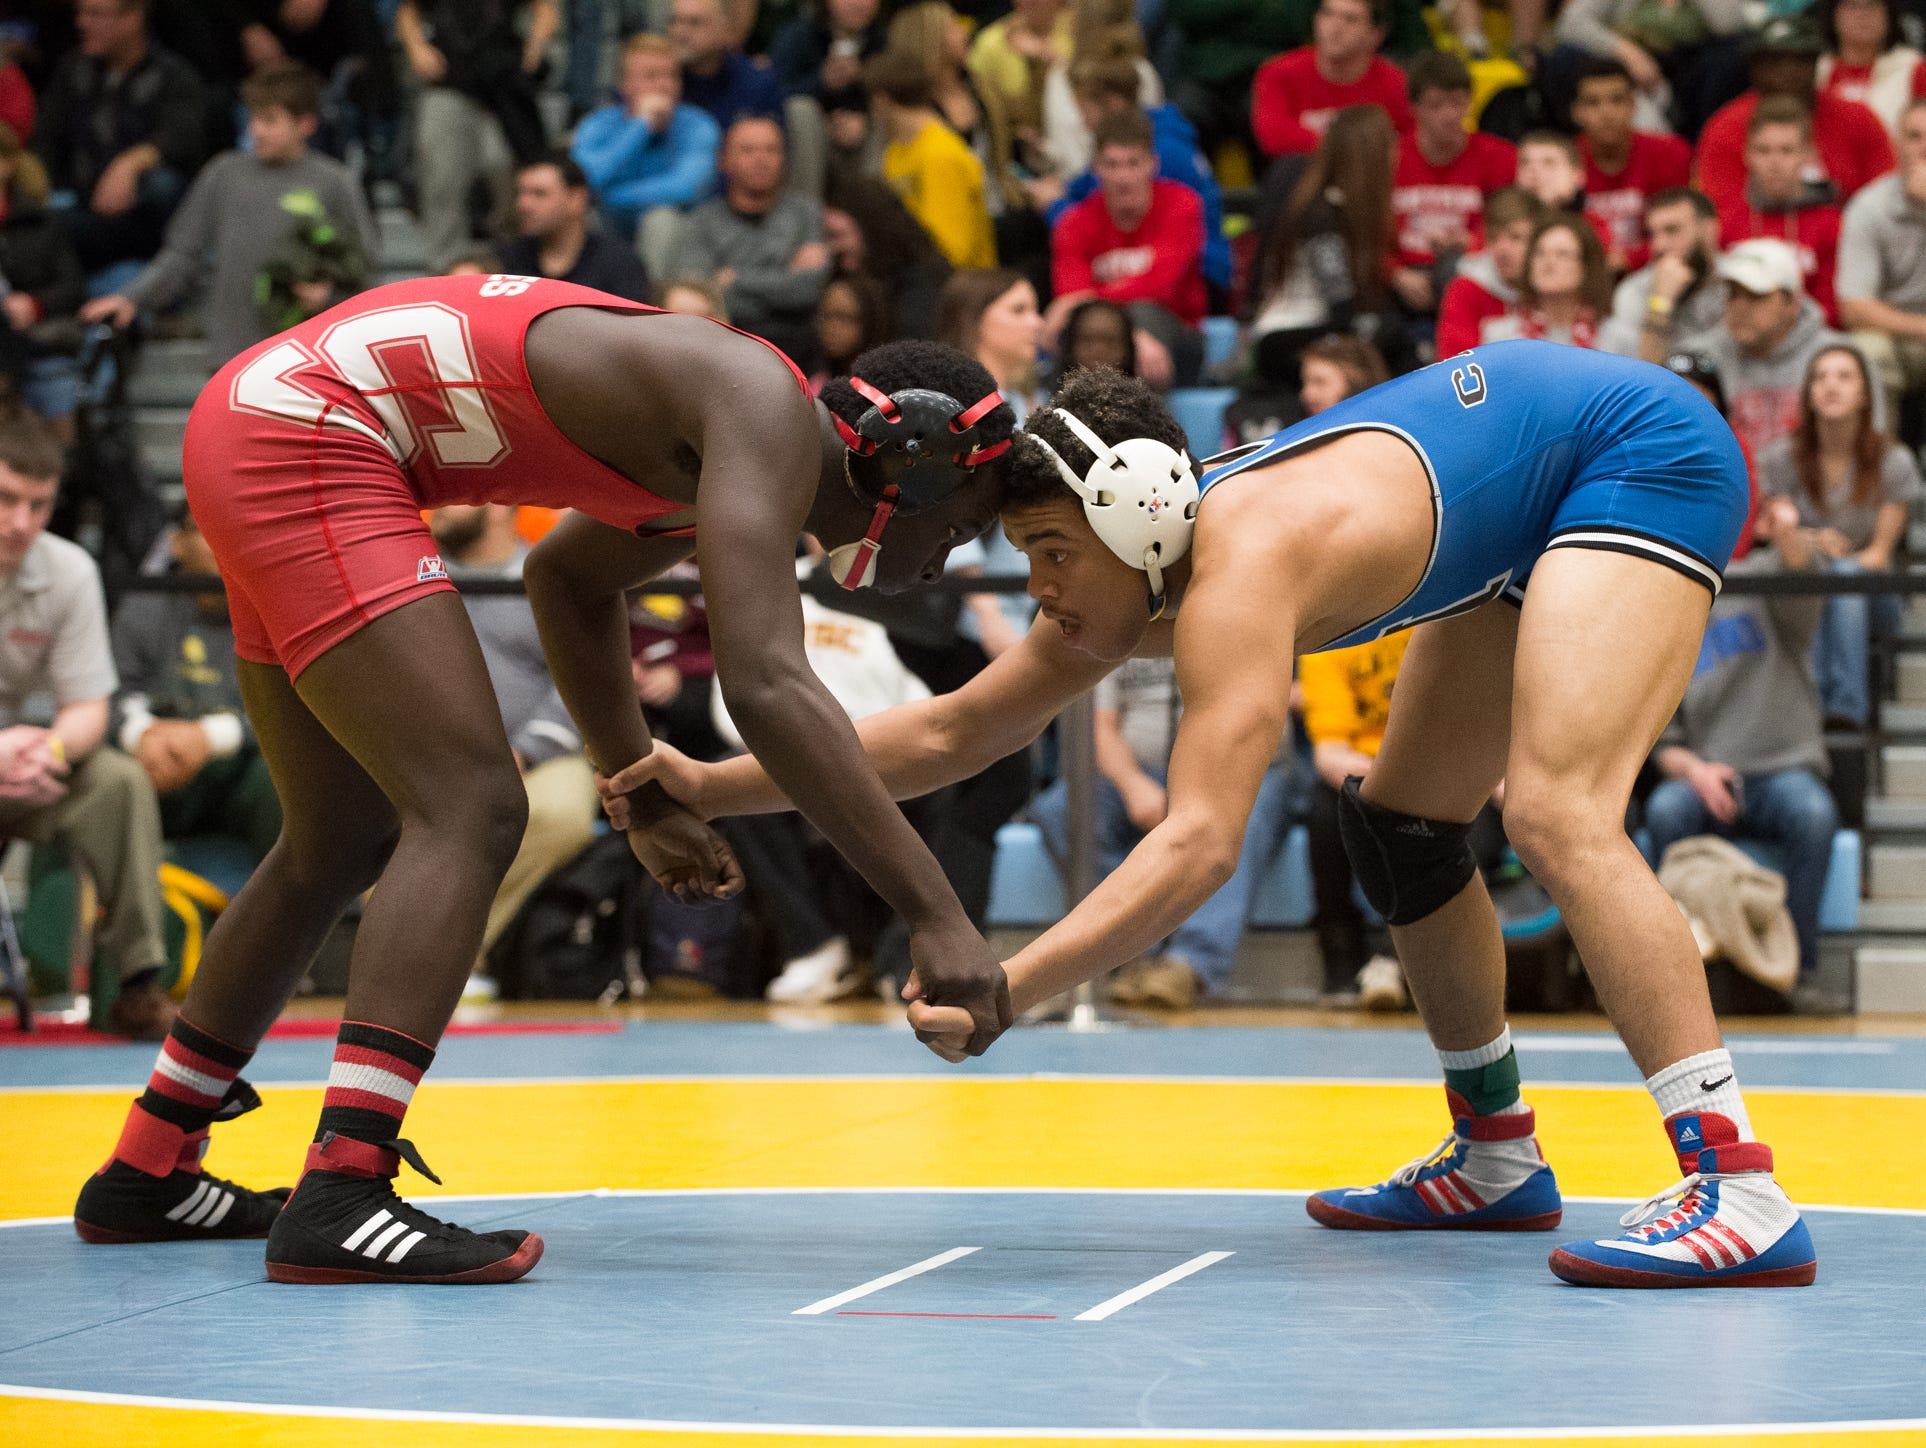 Middletown's Isiah Mitchell, right faces off against Smyrna's Larsen Wilson in the 170 pound quarterfinals at the DIAA Individual State Tournament at Cape Henlopen High School.